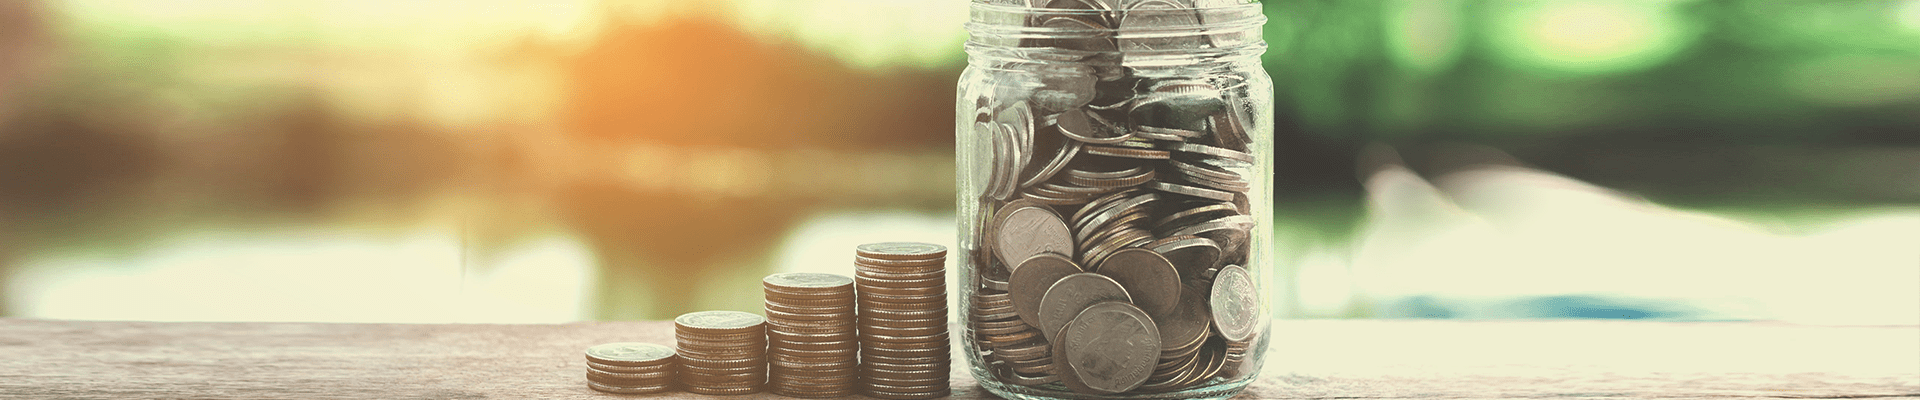 money jar and coins